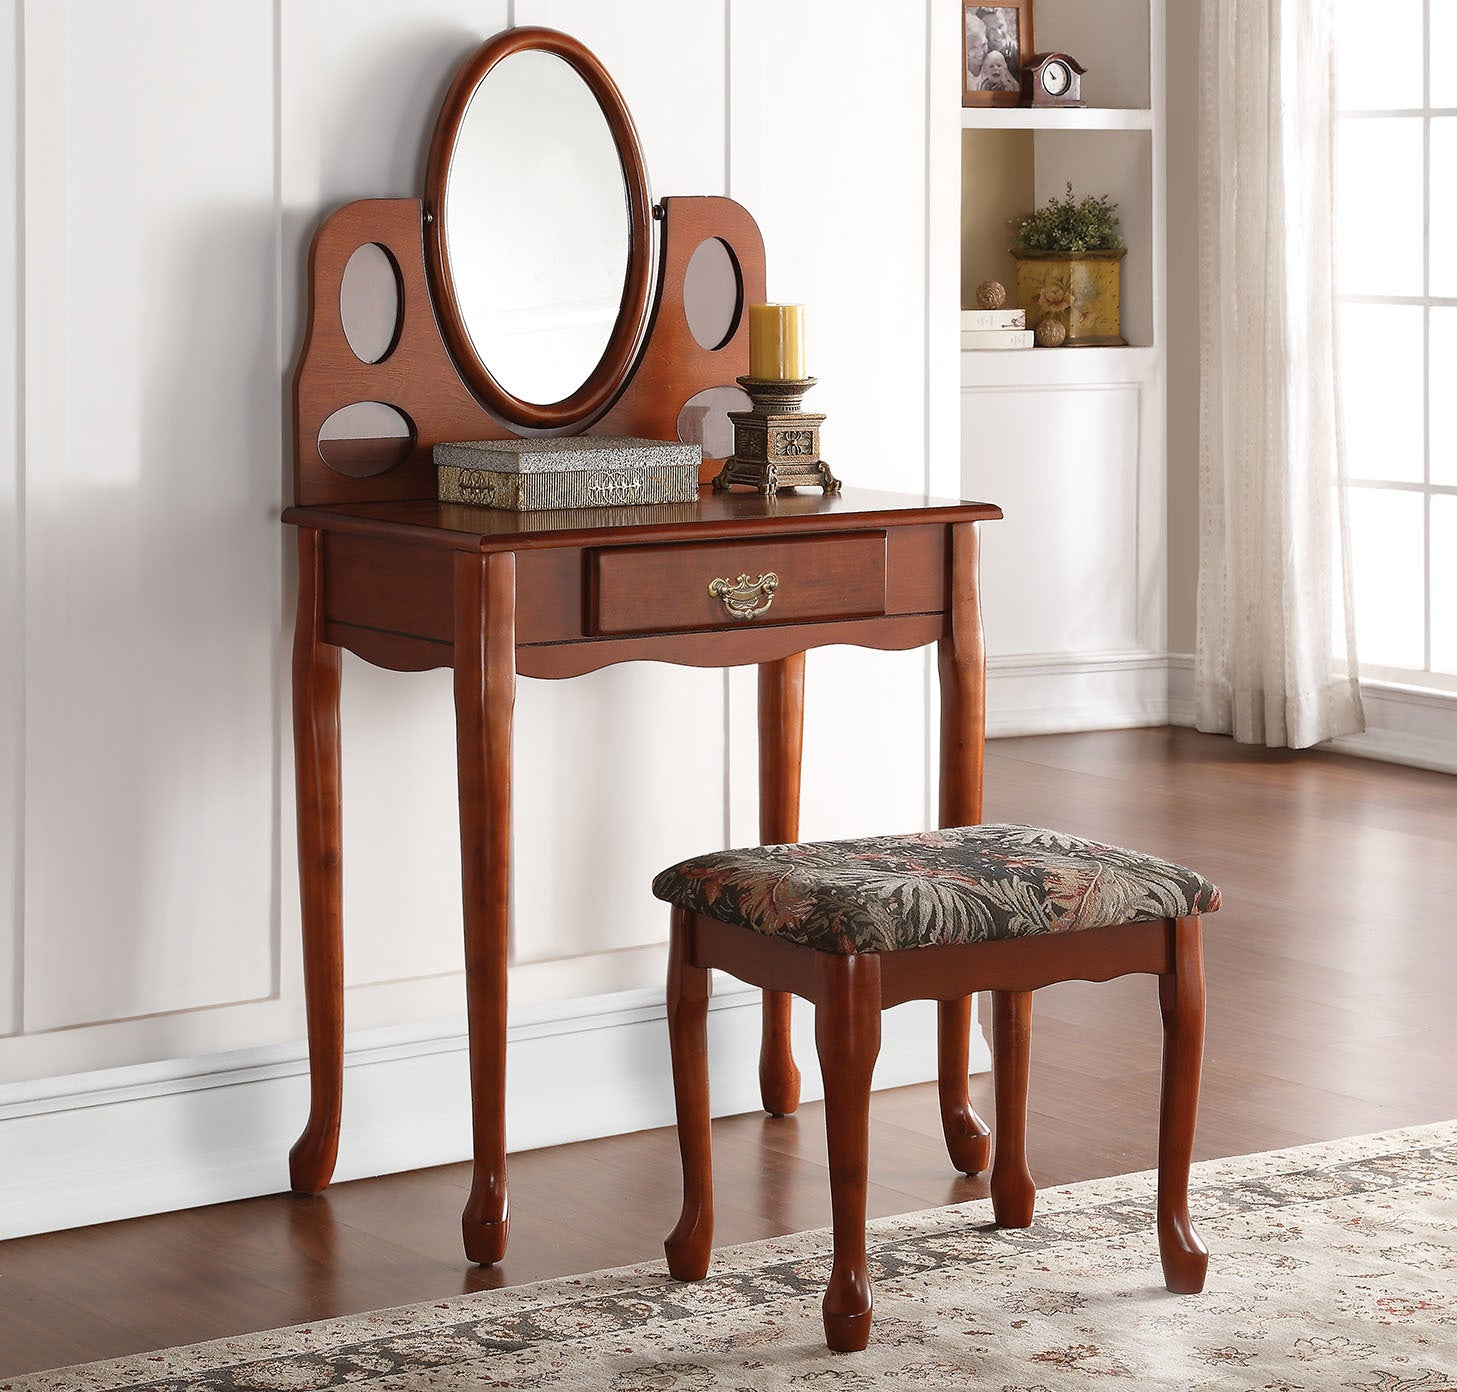 The Aldine Vanity Set will Simply be a functional and stylish addition to any bedroom. Handsomely Crafted in warm Oak Finish, and composed from selected wood and veneers. The vanity desk features: a storage drawer, Tilt Oval Mirror, and is beautifully complemented with a padded seat ottoman. Some Assembly Required